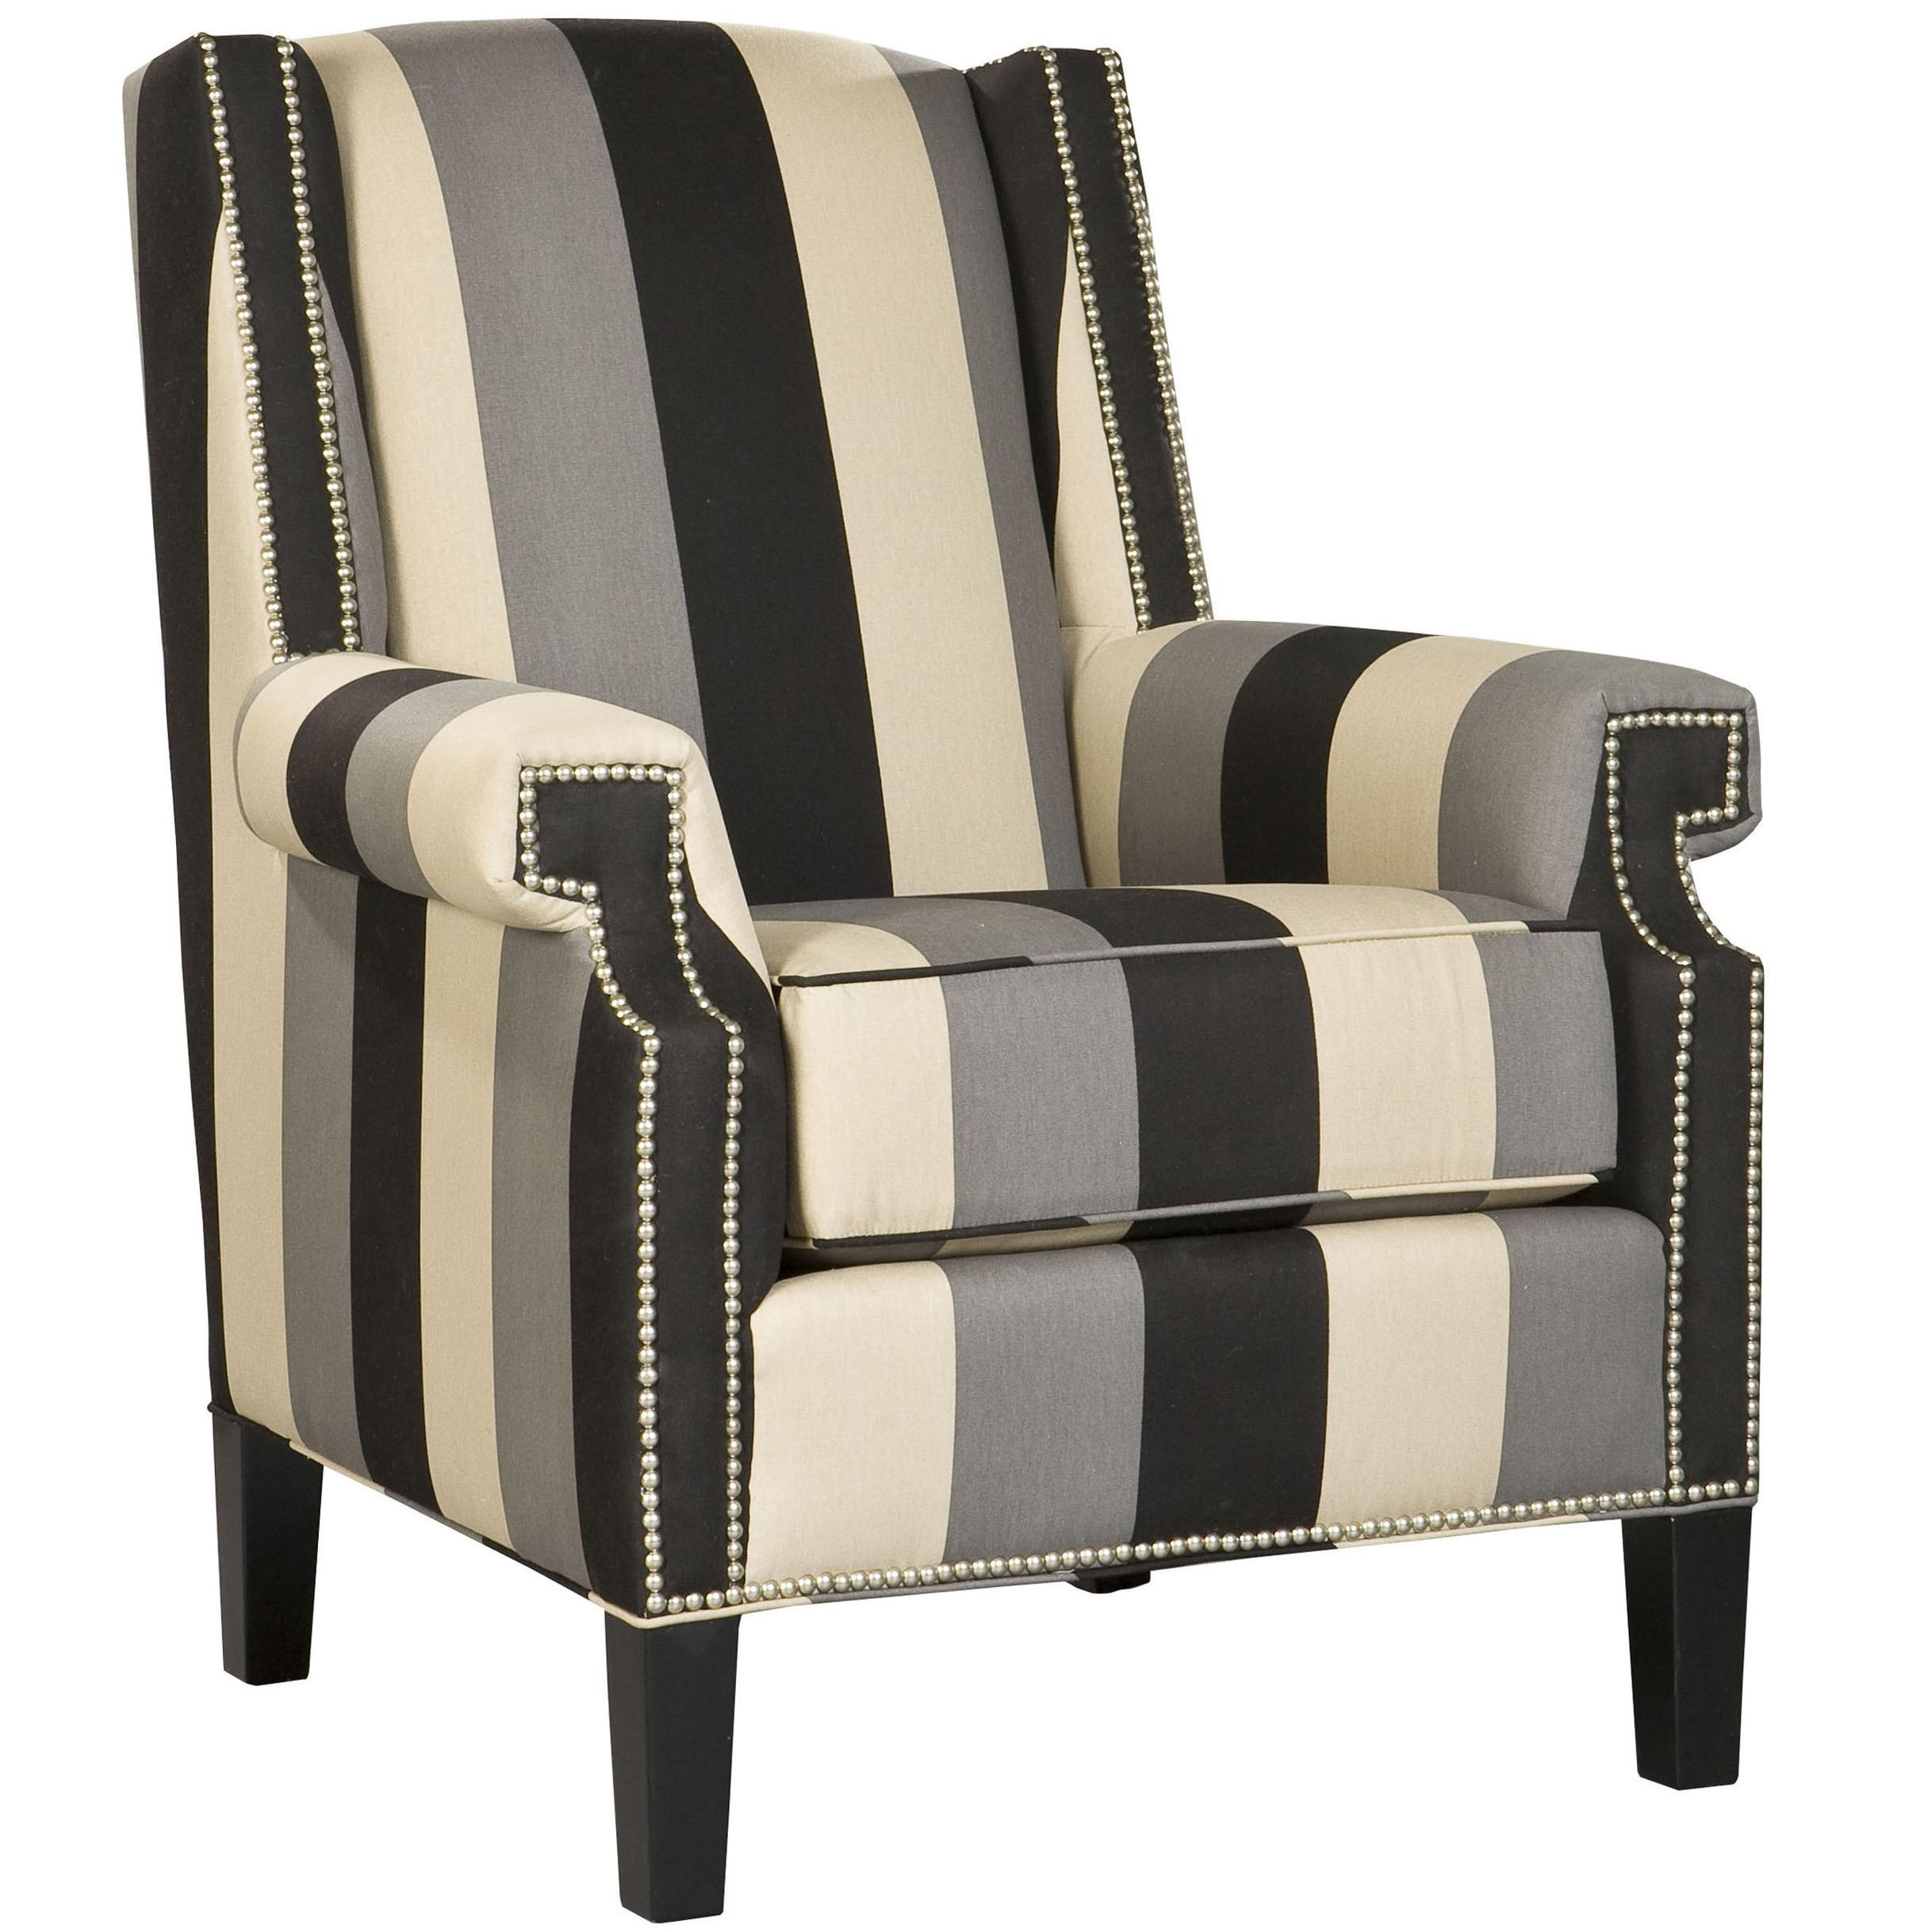 Contempary Accent Chair